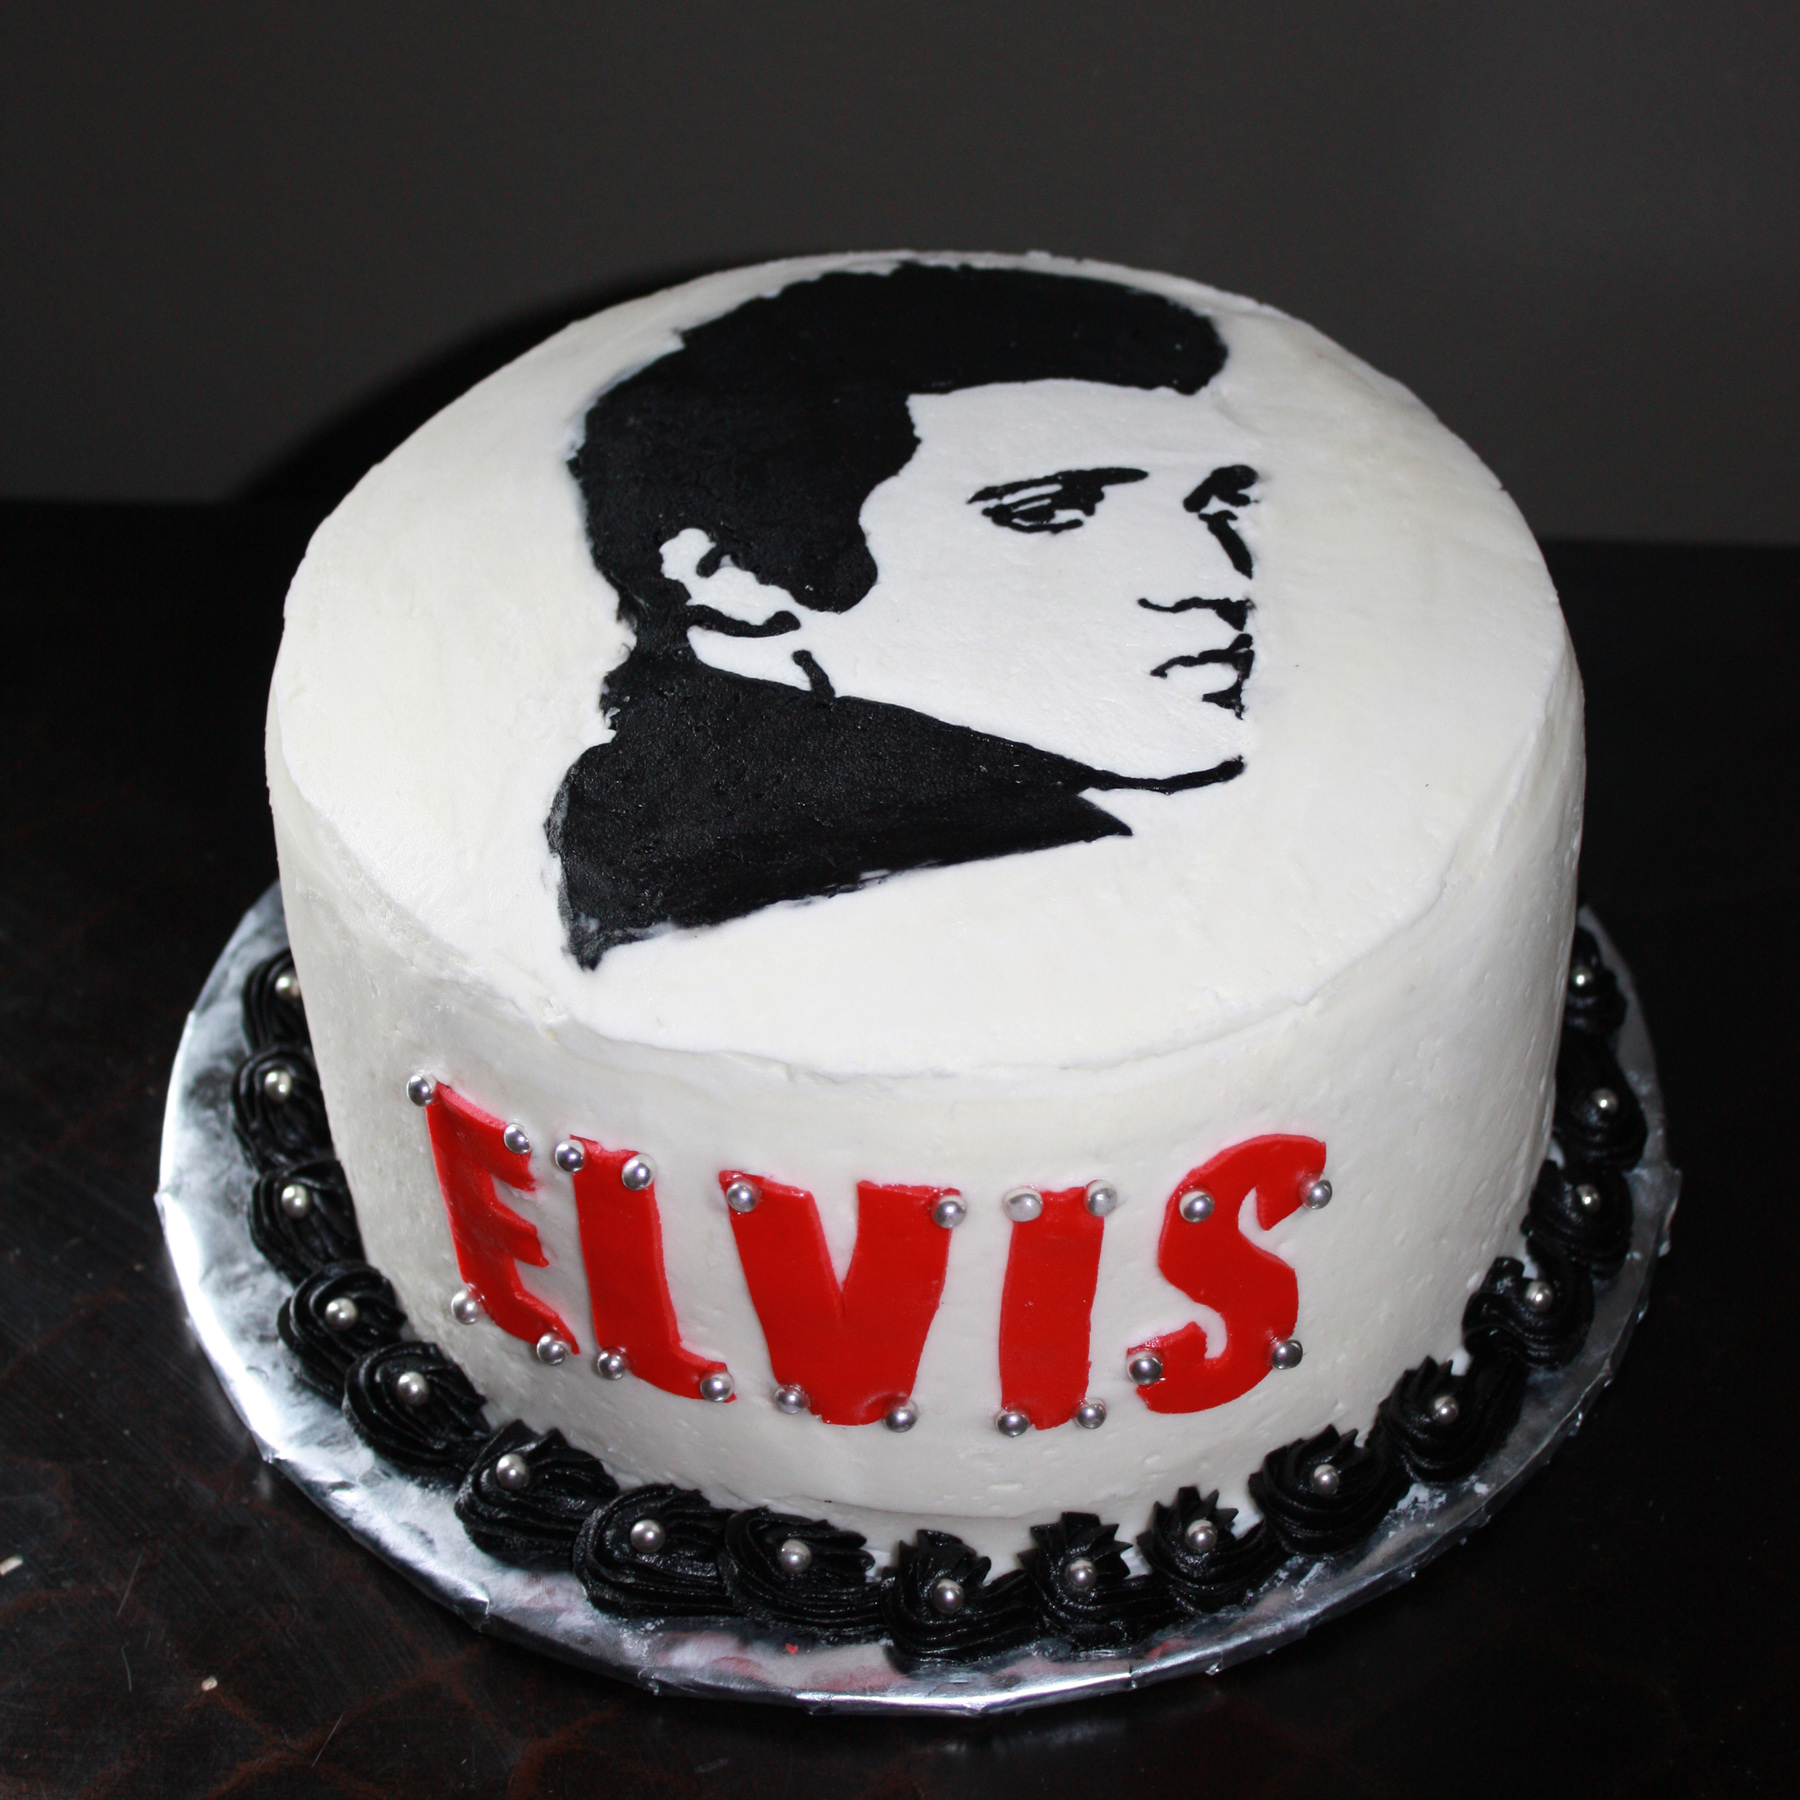 Elvis Cake Ideas http://thatprecariousgait.com/2012/04/12/im-sorry-i-put-asians-on-your-wall/